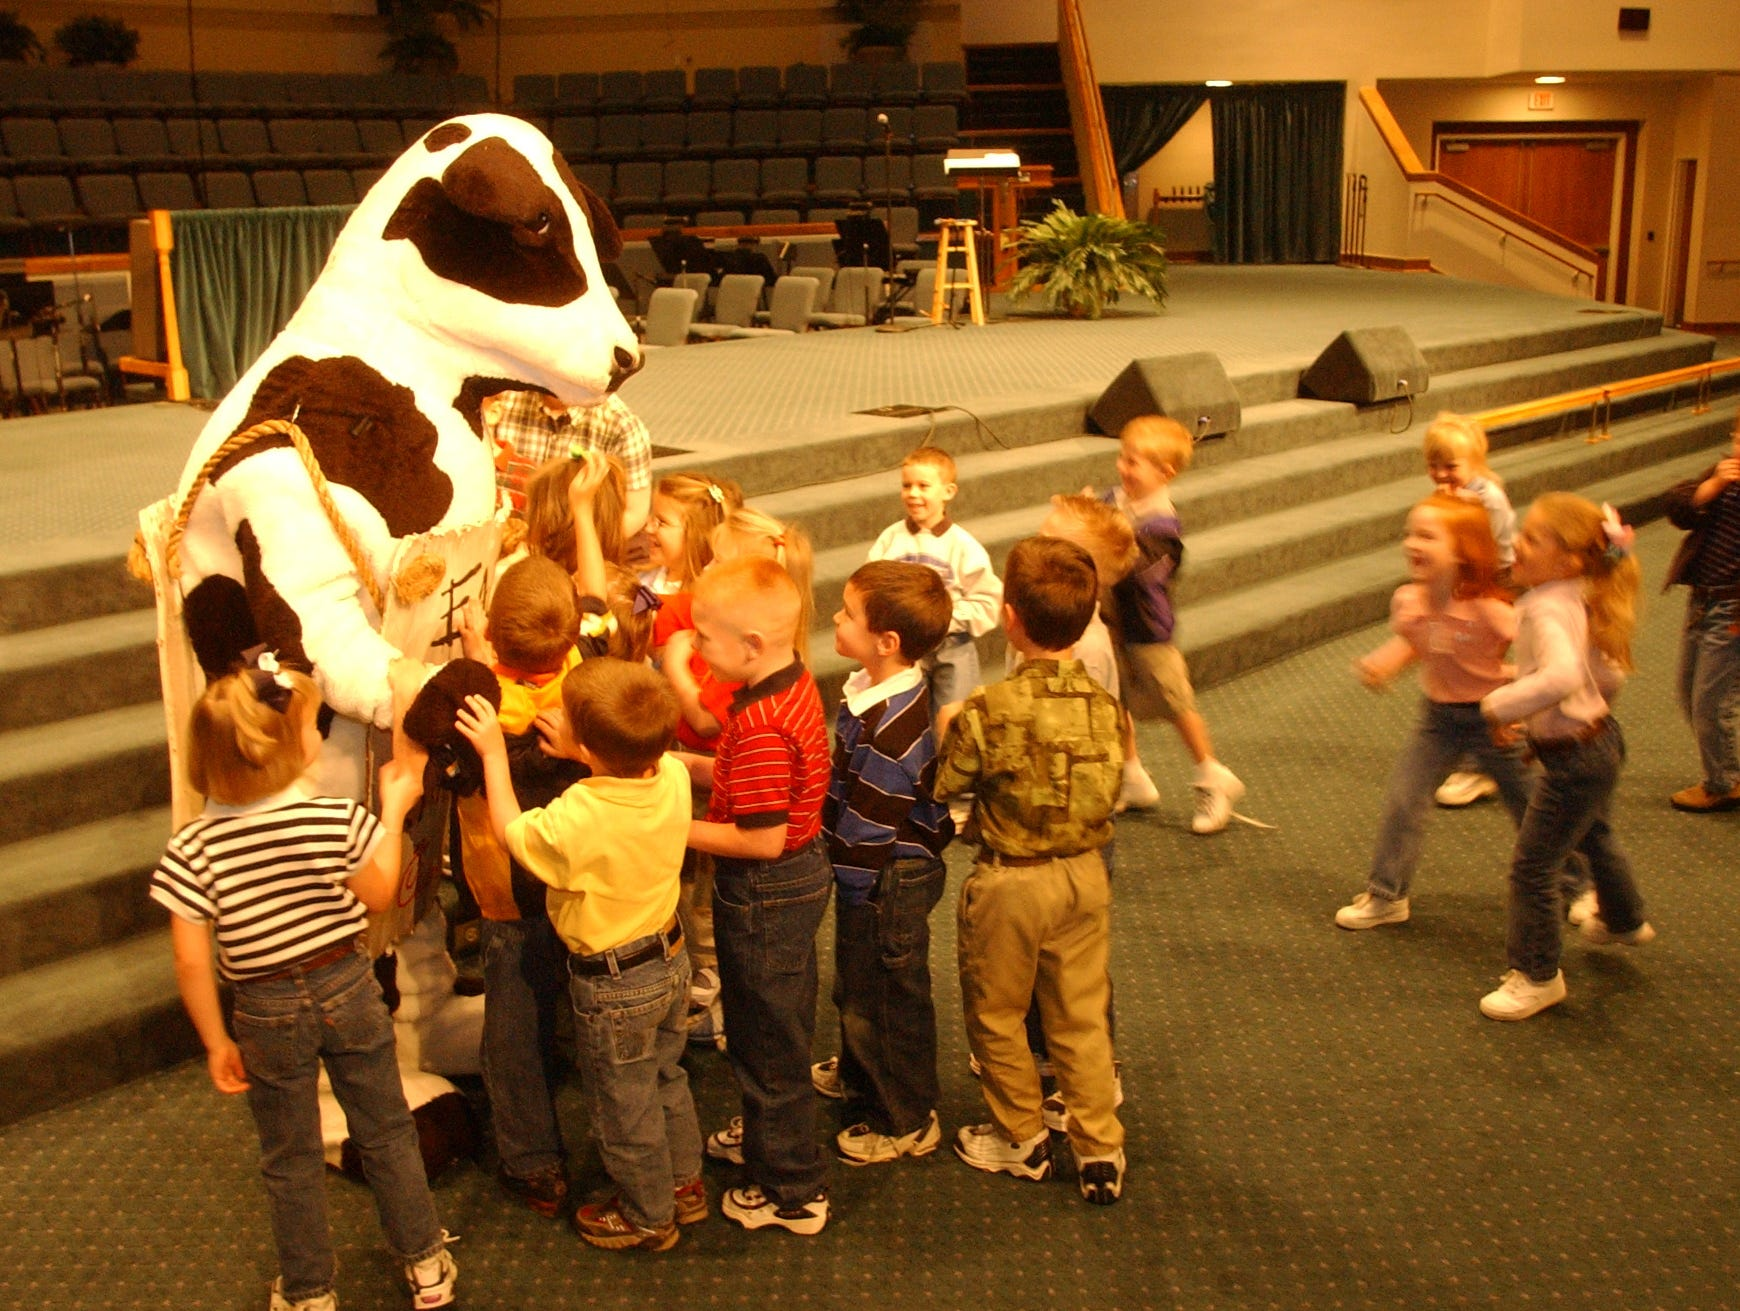 Children in Rebeckah Phelps kindergarden class at Grace Baptist Church School rush to hug the Chik-fil-A cow at the end of a Chapoel service in the Church Sanctuary.  Local Chick-fil-A restaurants including the Crown Point Plaza restaurant on Clinton Hwy. partner with elementary schools to promote character education through core essentials programs.  2003.